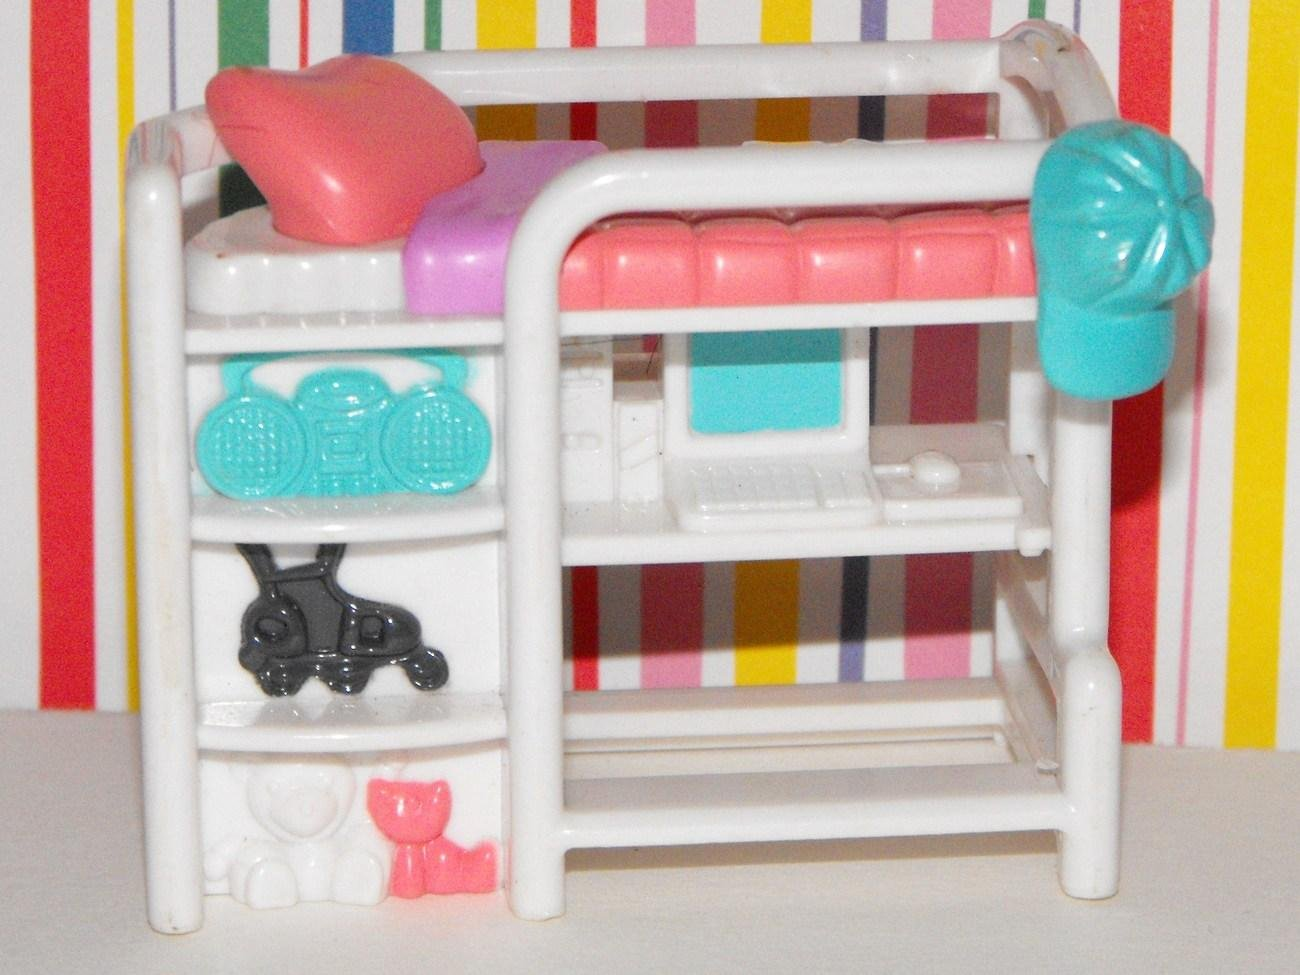 FISHER PRICE SWEET STREETS BEACH HOUSE BED